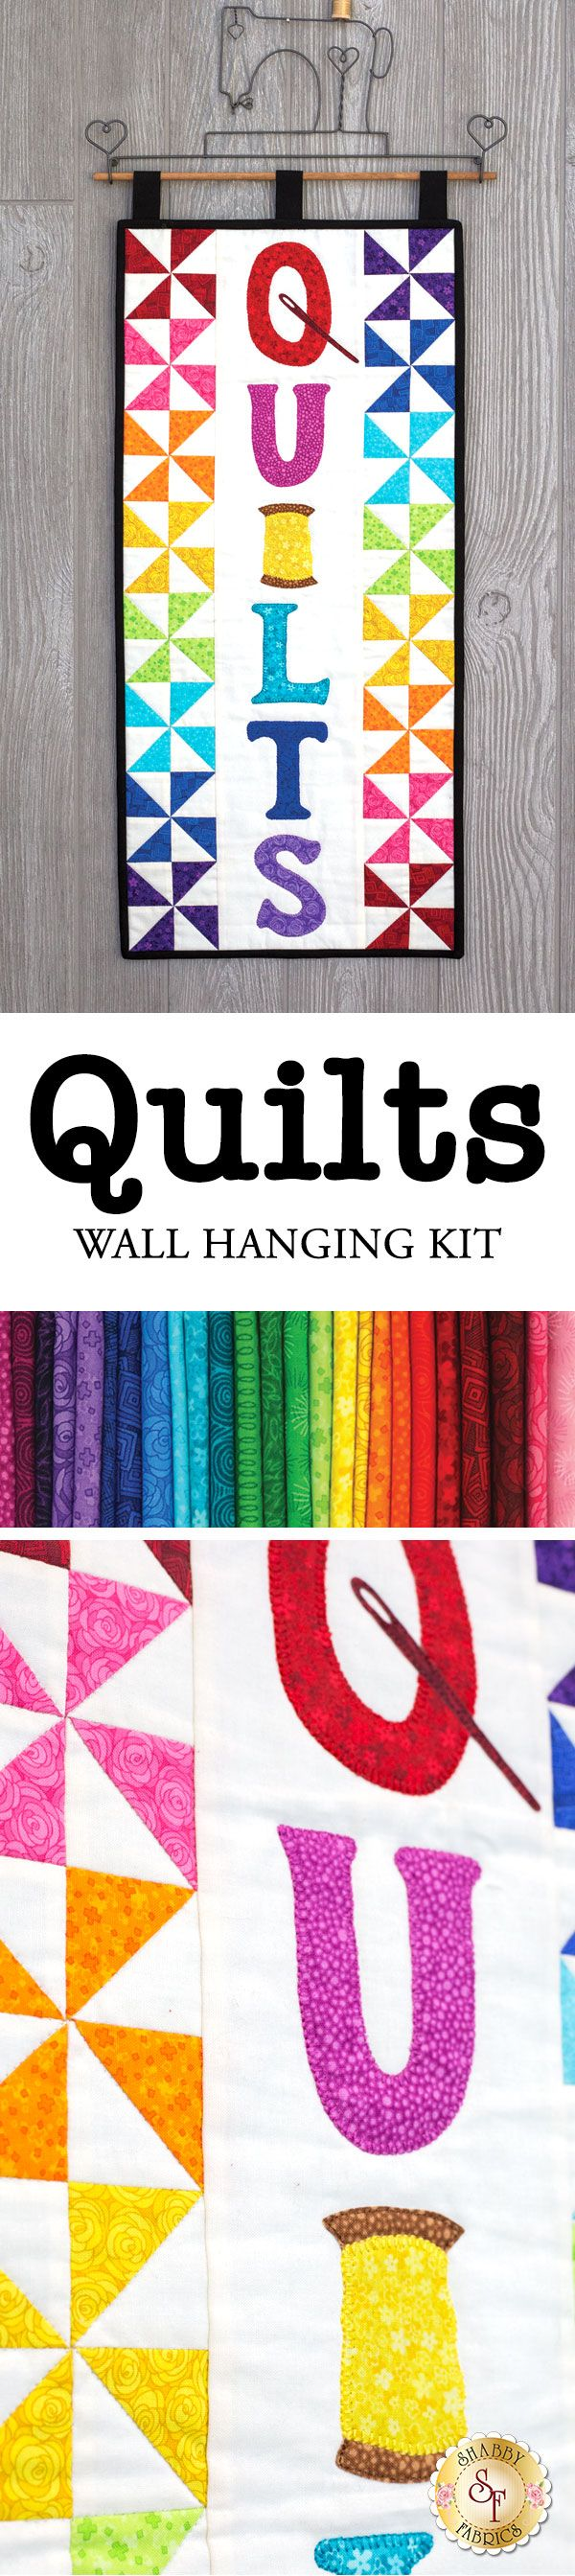 "Show off your favorite hobby with the Quilts Wall Hanging! This vibrant wall hanging features the word ""Quilts"" in darling appliqué bordered by a rainbow of pinwheel blocks! Hung from one of the darlling craft holders availale below, this wall hanging makes a bright and fun addition to any room - especially sewing and craft rooms!"